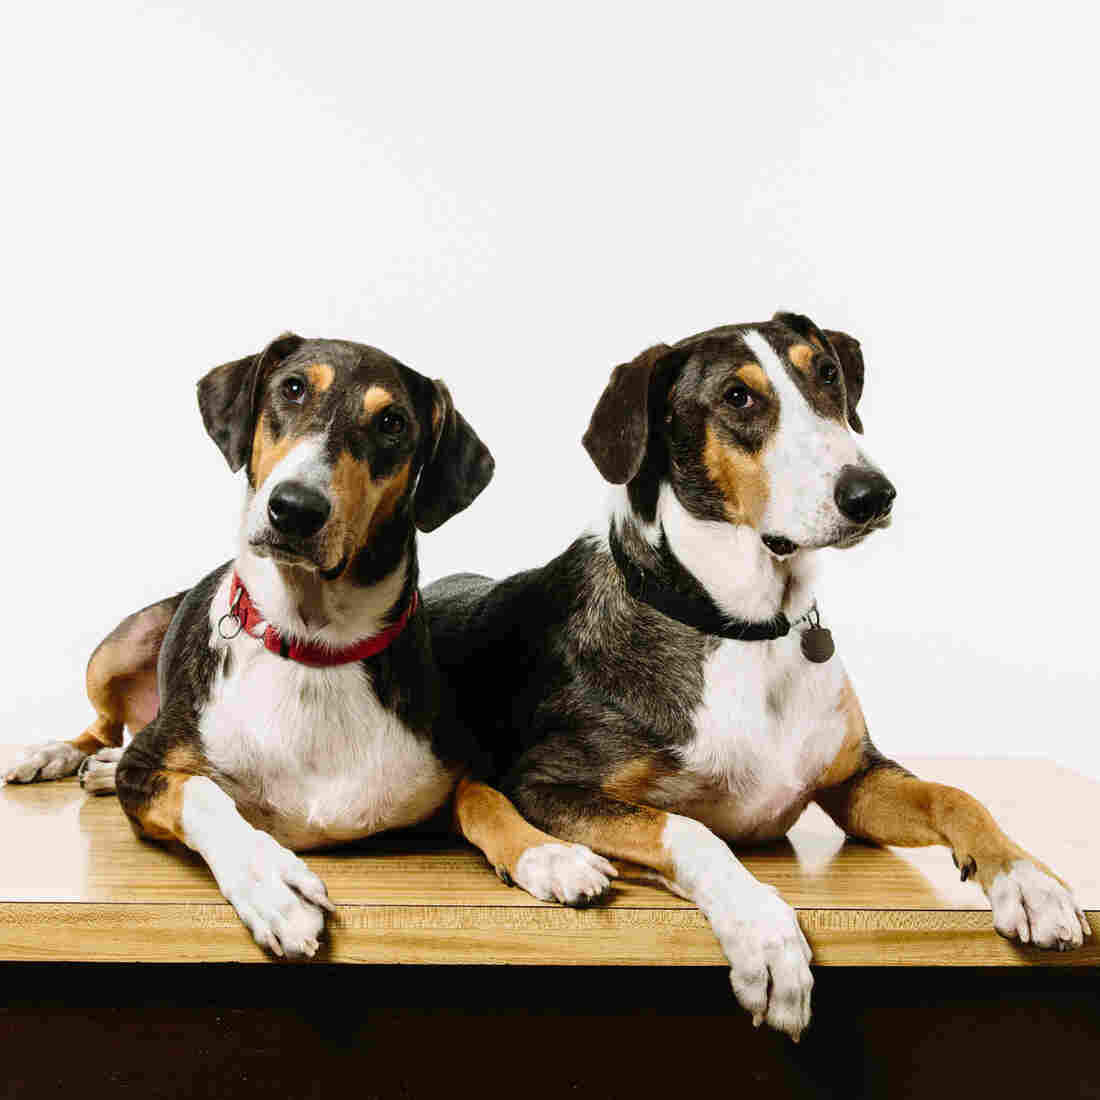 Cloning Your Dog, For A Mere $100,000